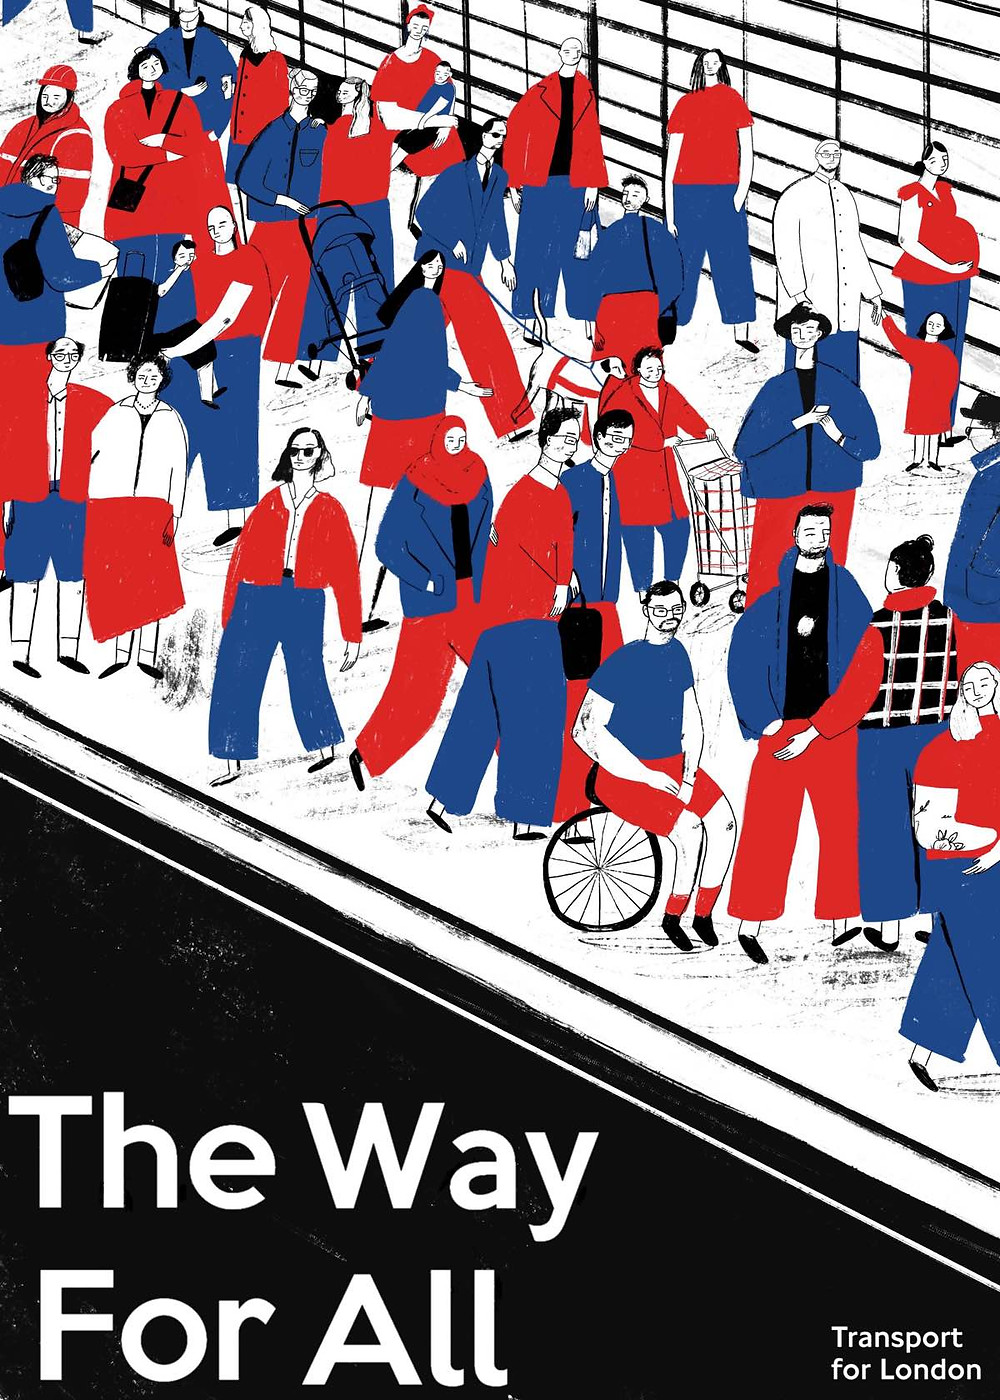 'TFL: The Way for All' by illustrator Lizzie Knott